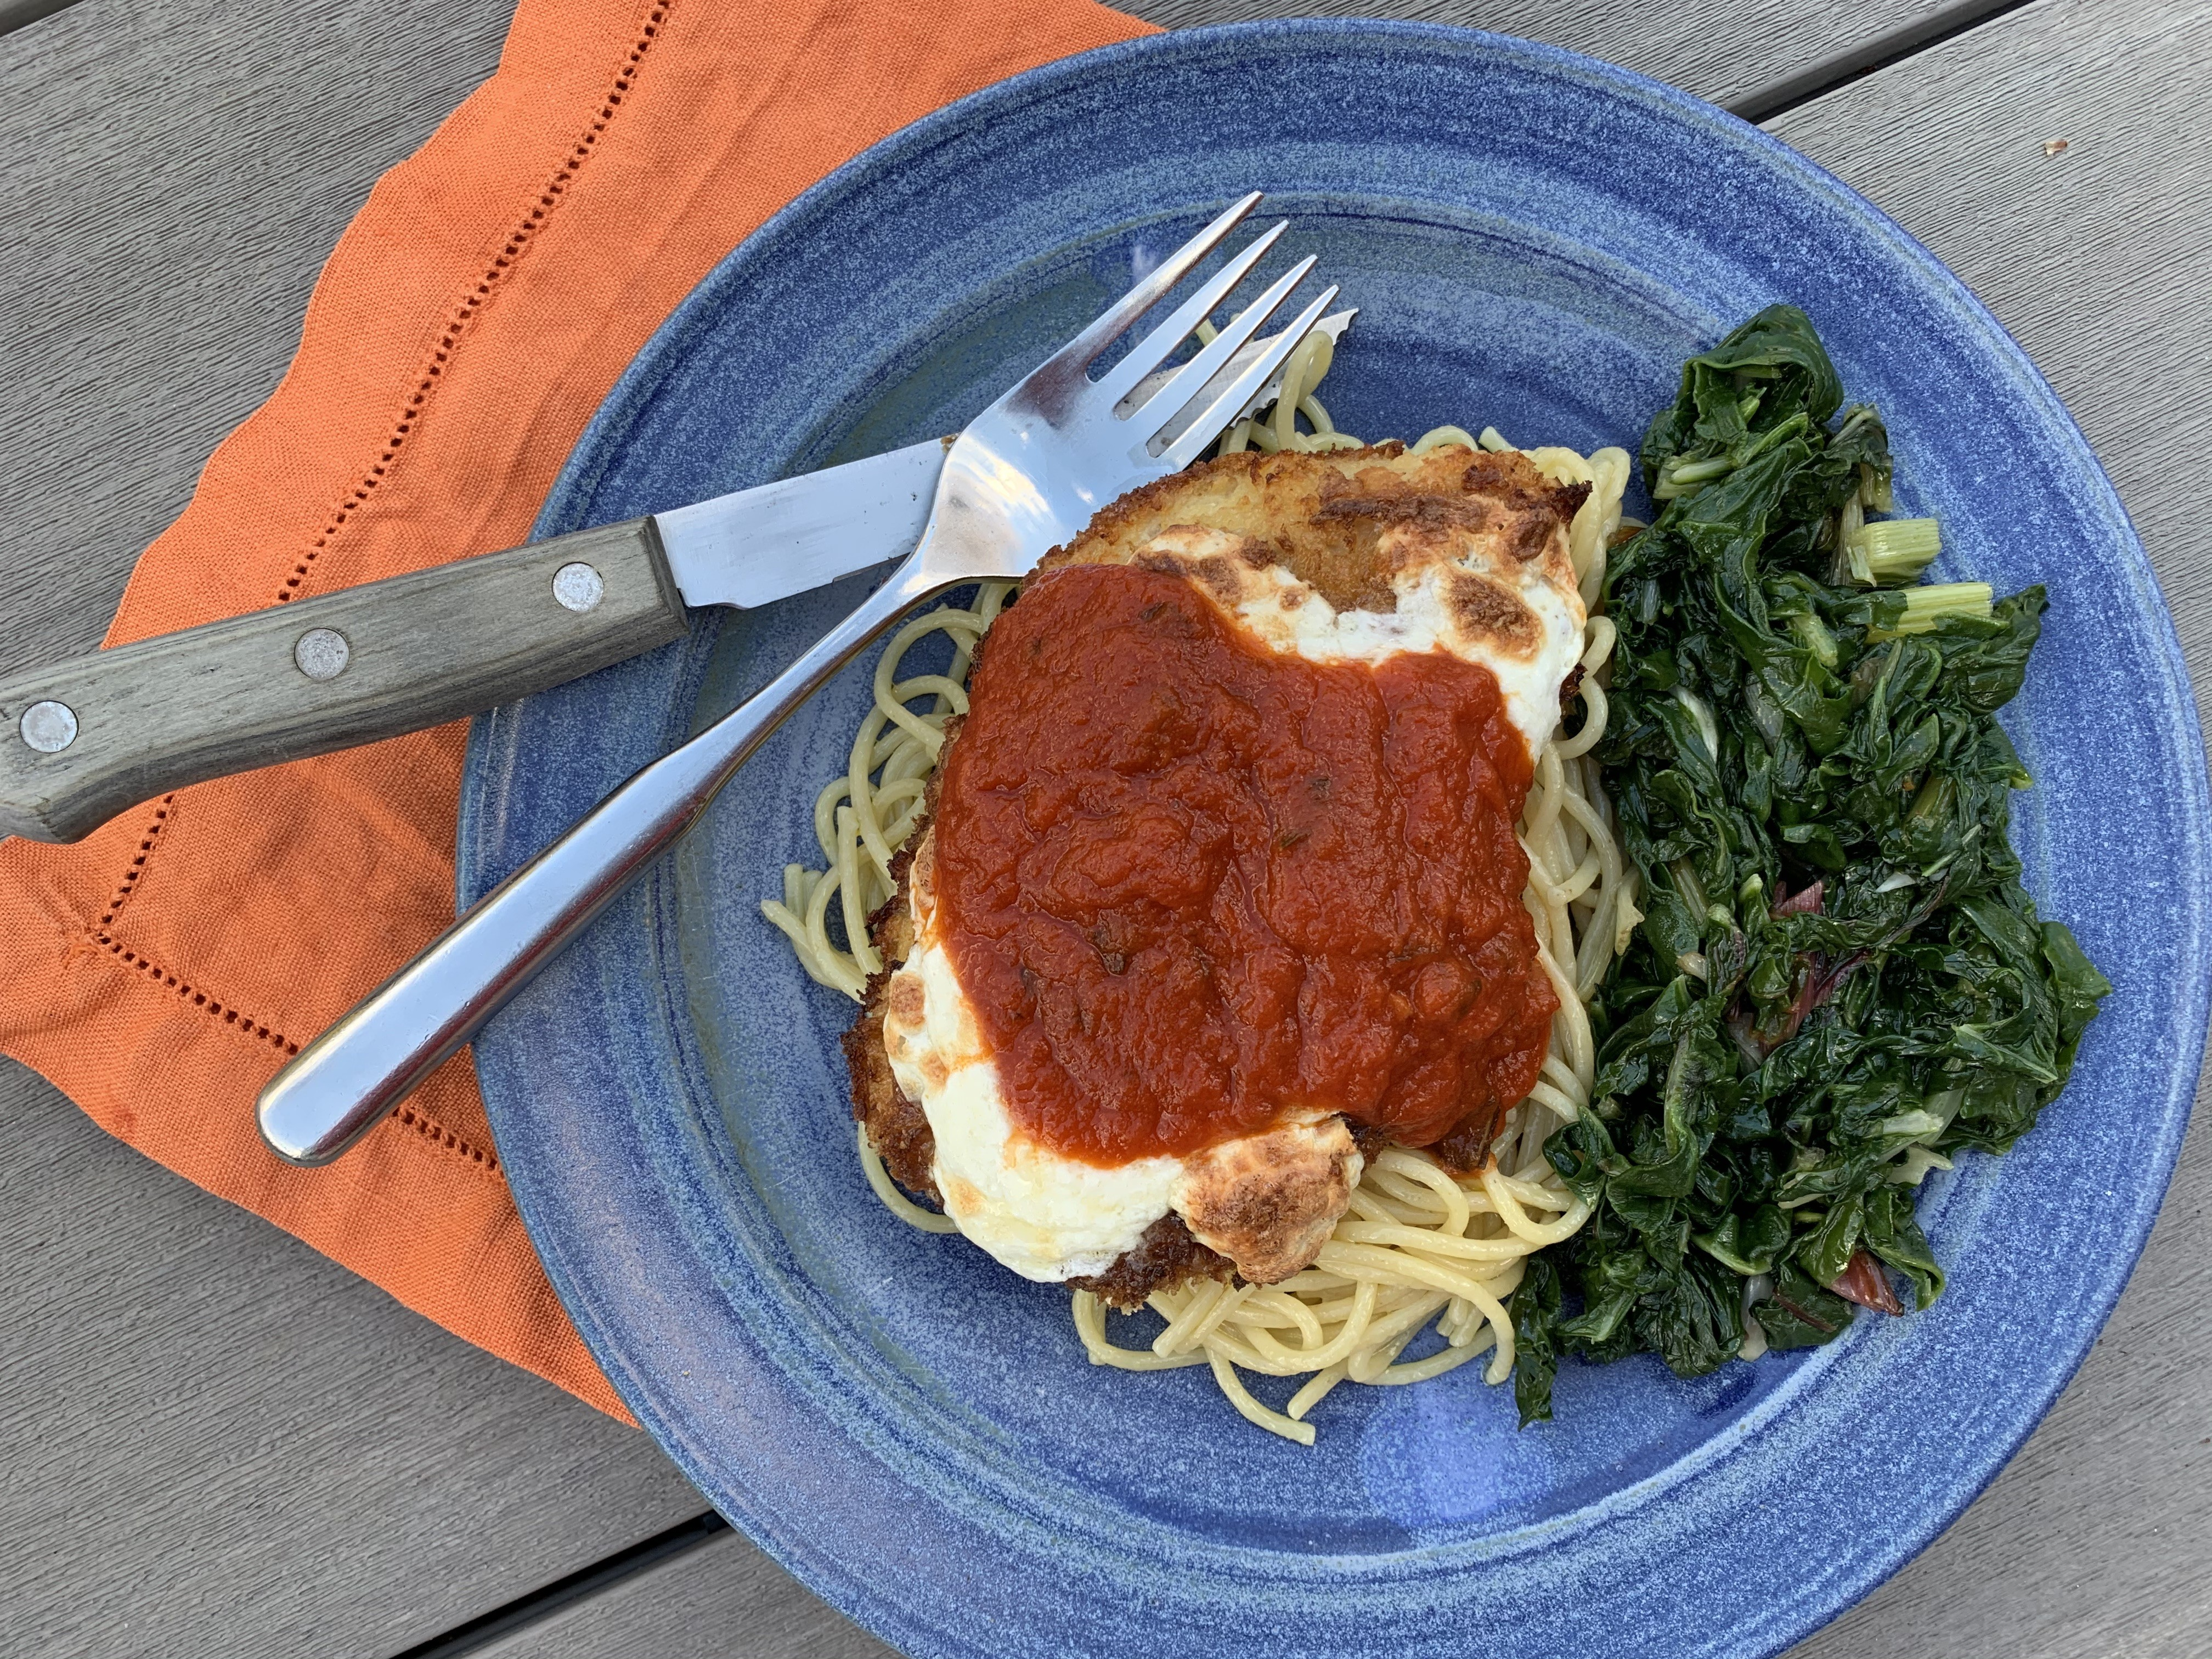 Home On The Range Crispy Chicken Parmesan Home On The Range Seven Days Vermont S Independent Voice